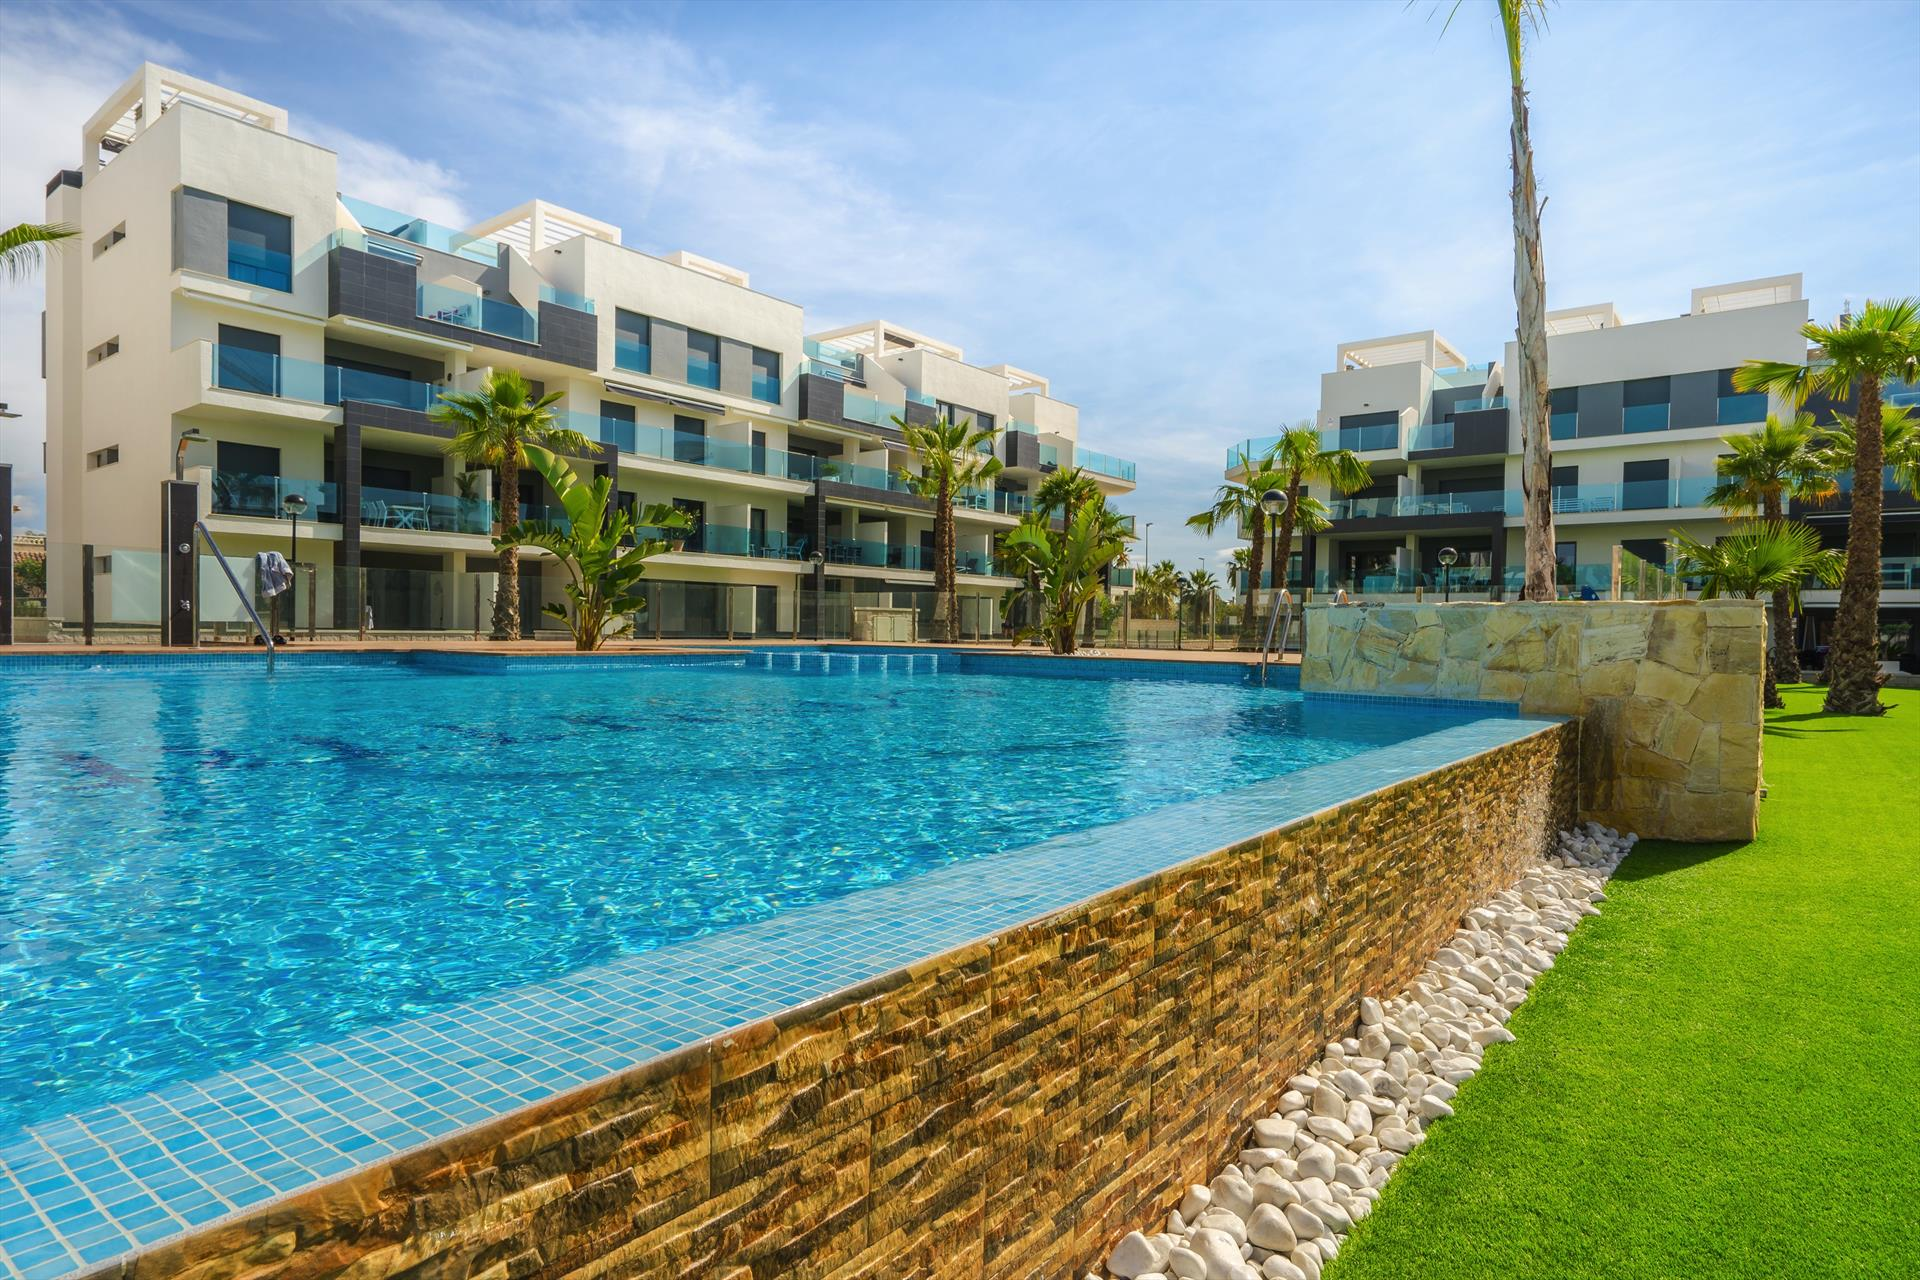 Giallo,Modern and comfortable apartment in Guardamar, on the Costa Blanca, Spain  with communal pool for 5 persons.....